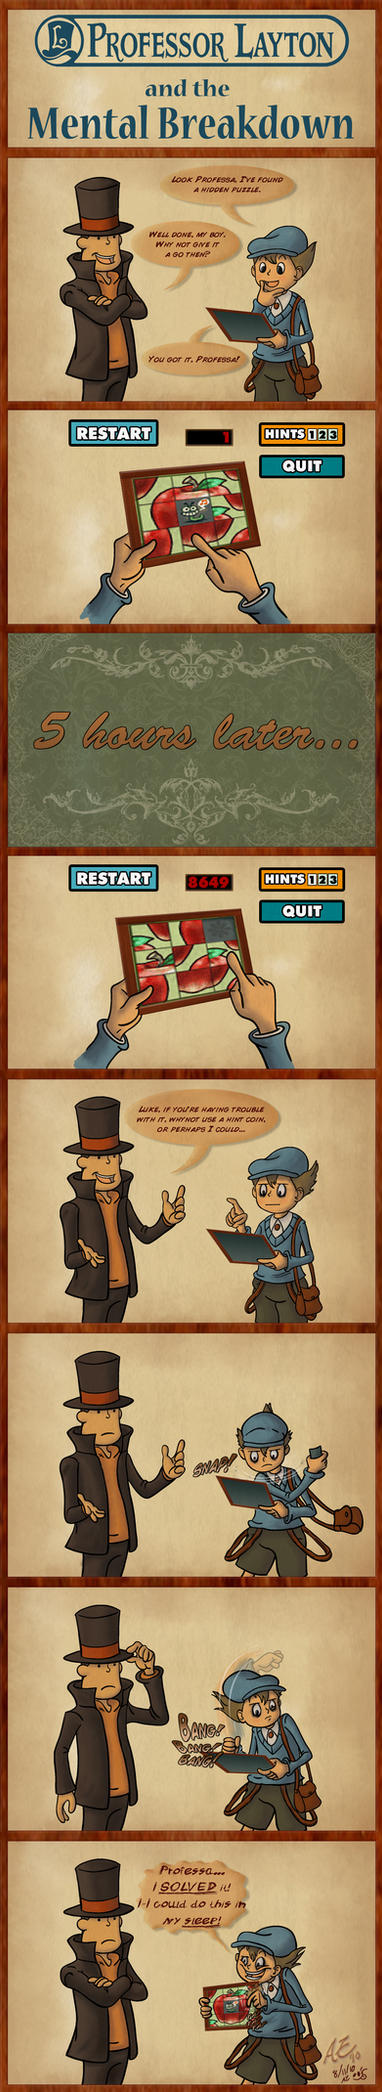 Layton and Mental Breakdown by That-one-gal